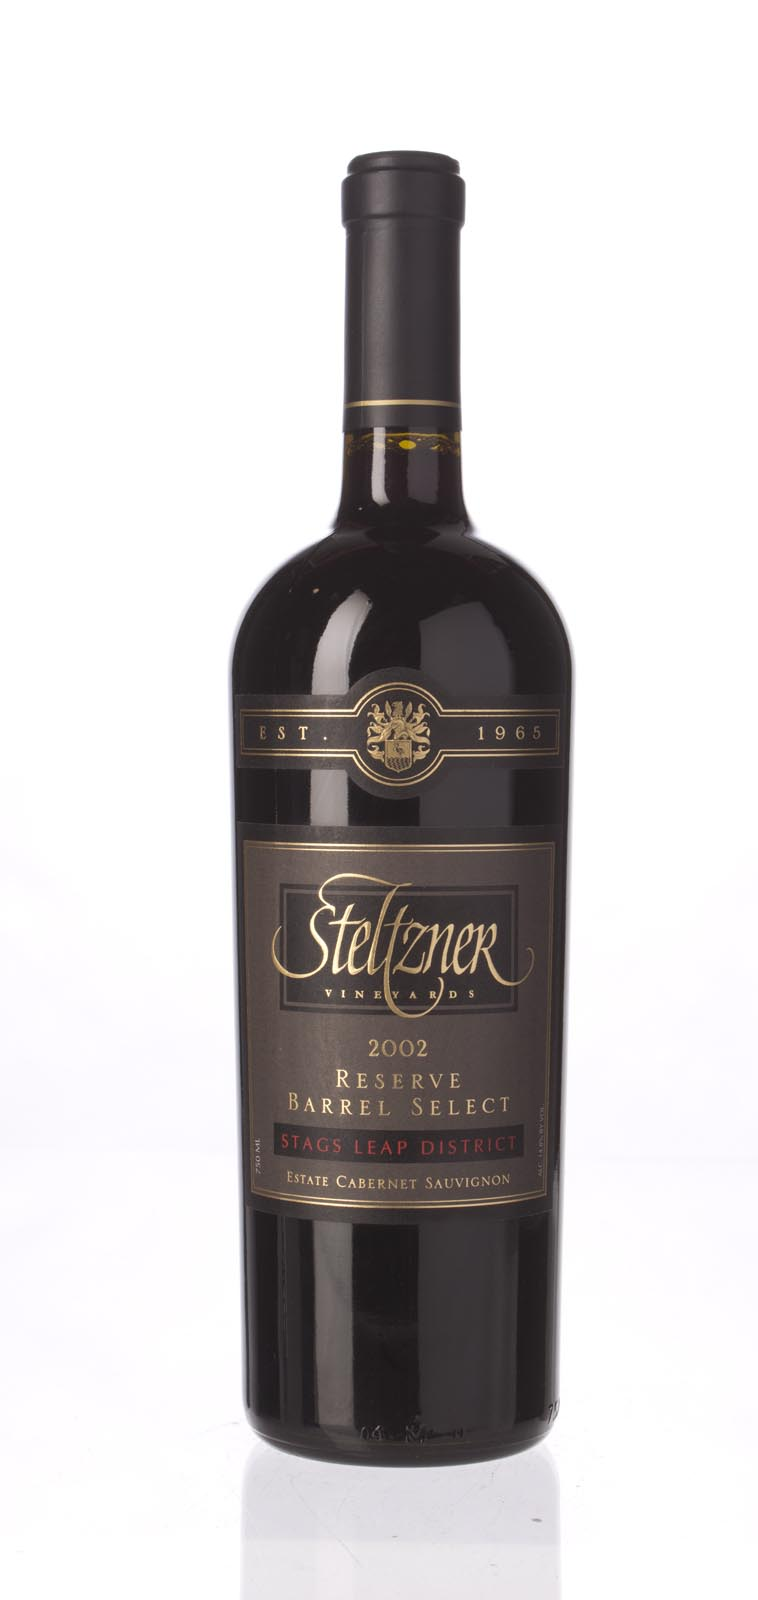 Steltzner Cabernet Sauvignon Barrel Select Reserve 2002, 750mL () from The BPW - Merchants of rare and fine wines.